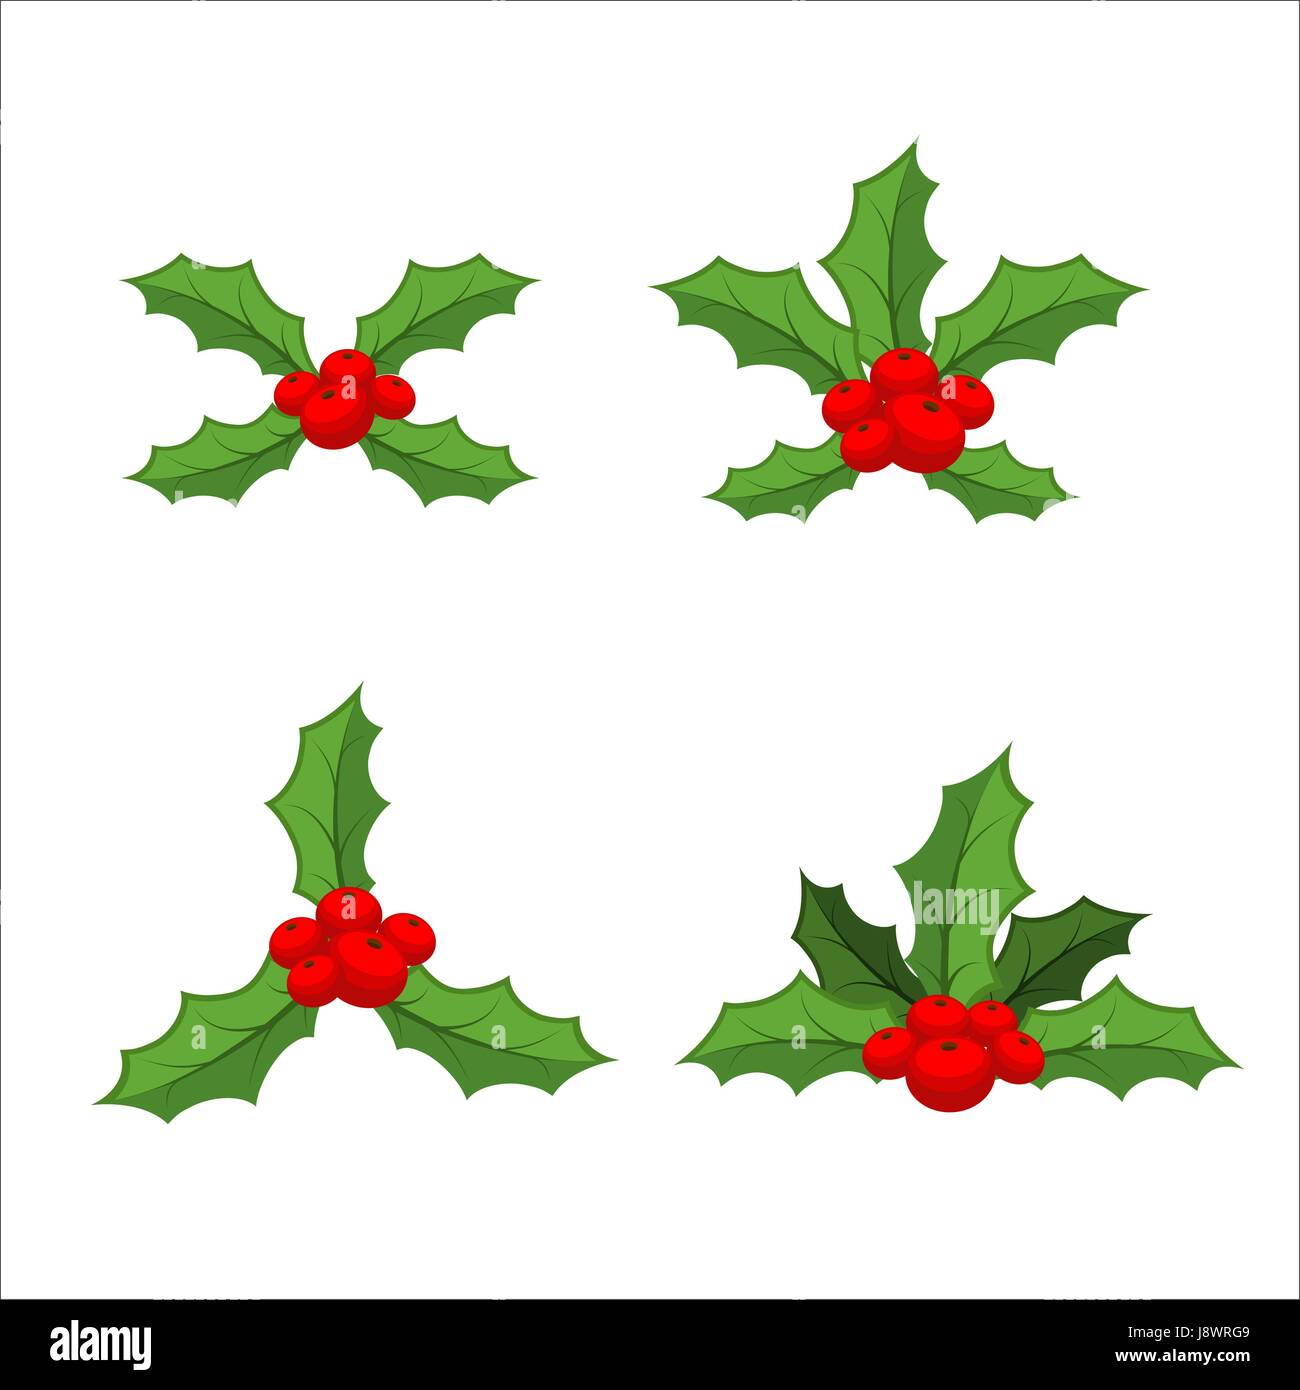 Sprig of mistletoe set. Traditional Christmas plant. Holiday red ...